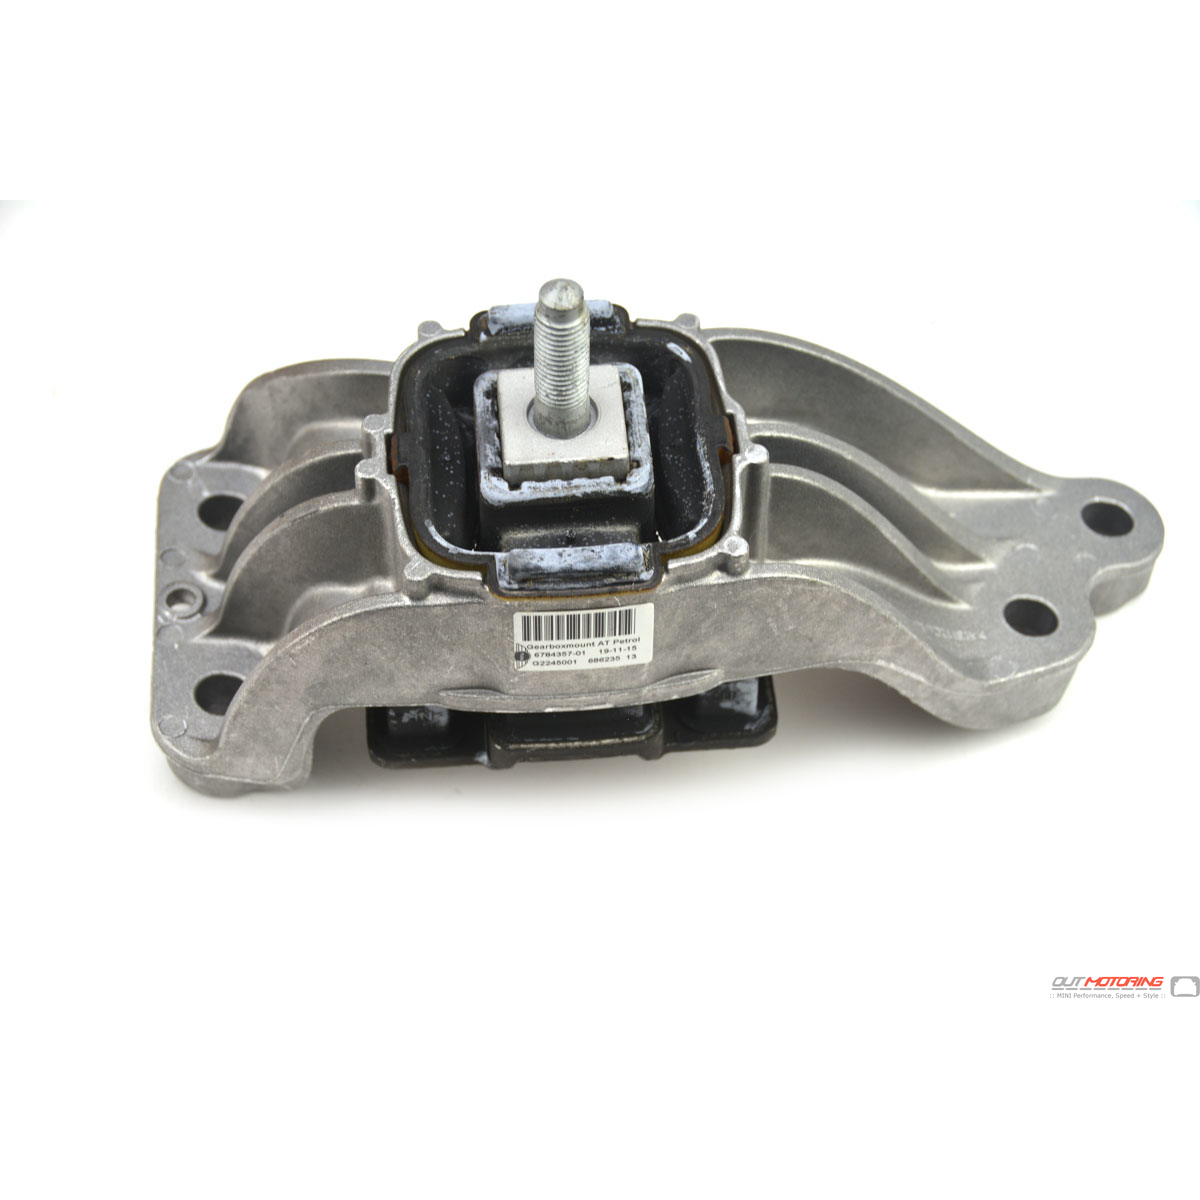 MINI Cooper Gearbox Suspention Automatic Transmission